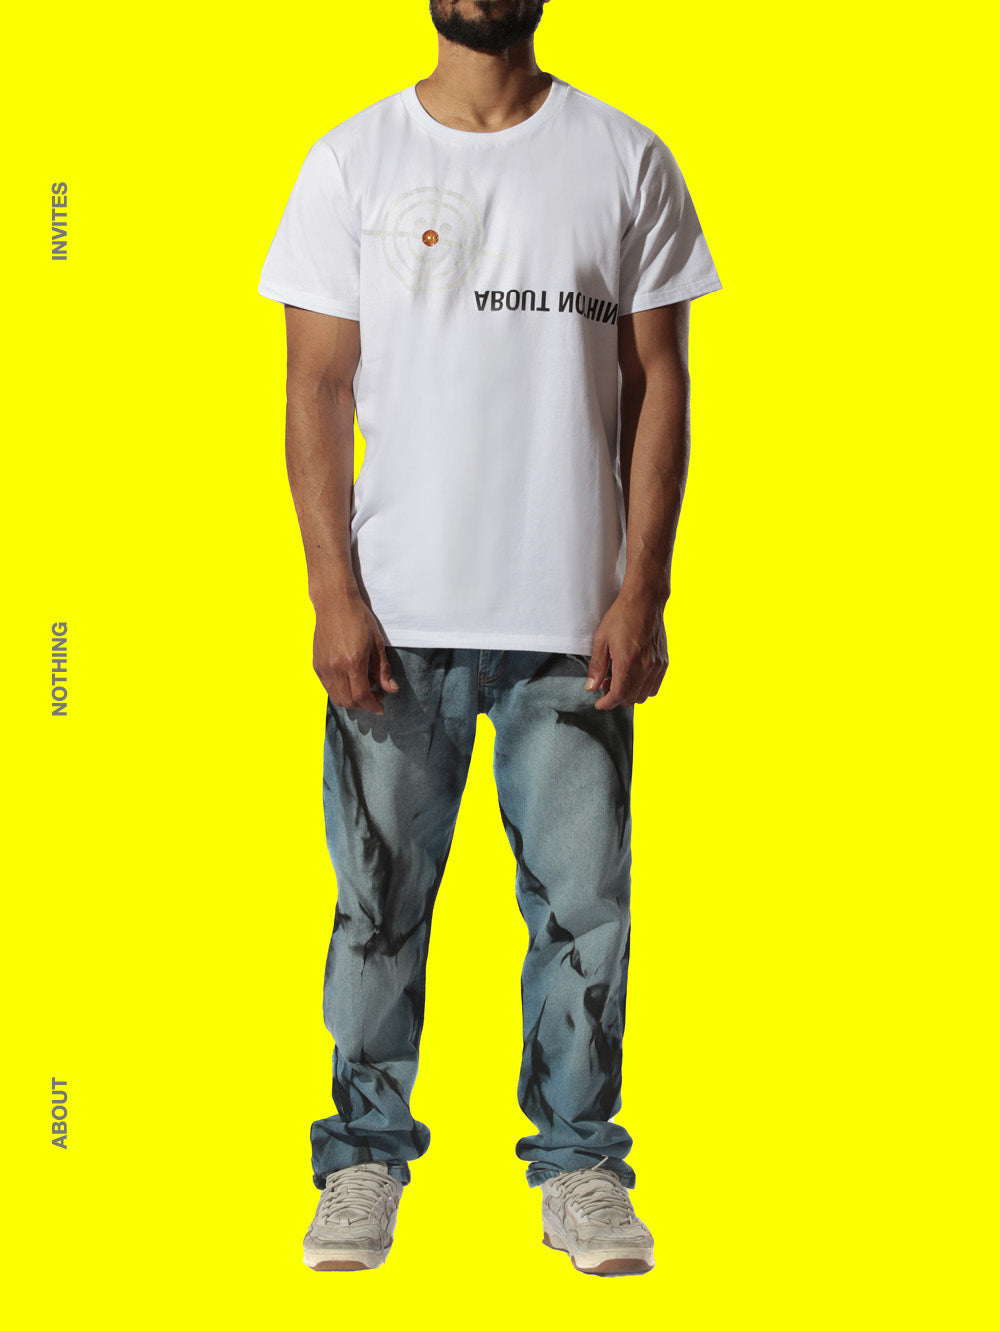 T_SHIRT [WHITE] // ABOUT NOTHING X WORLDXIT